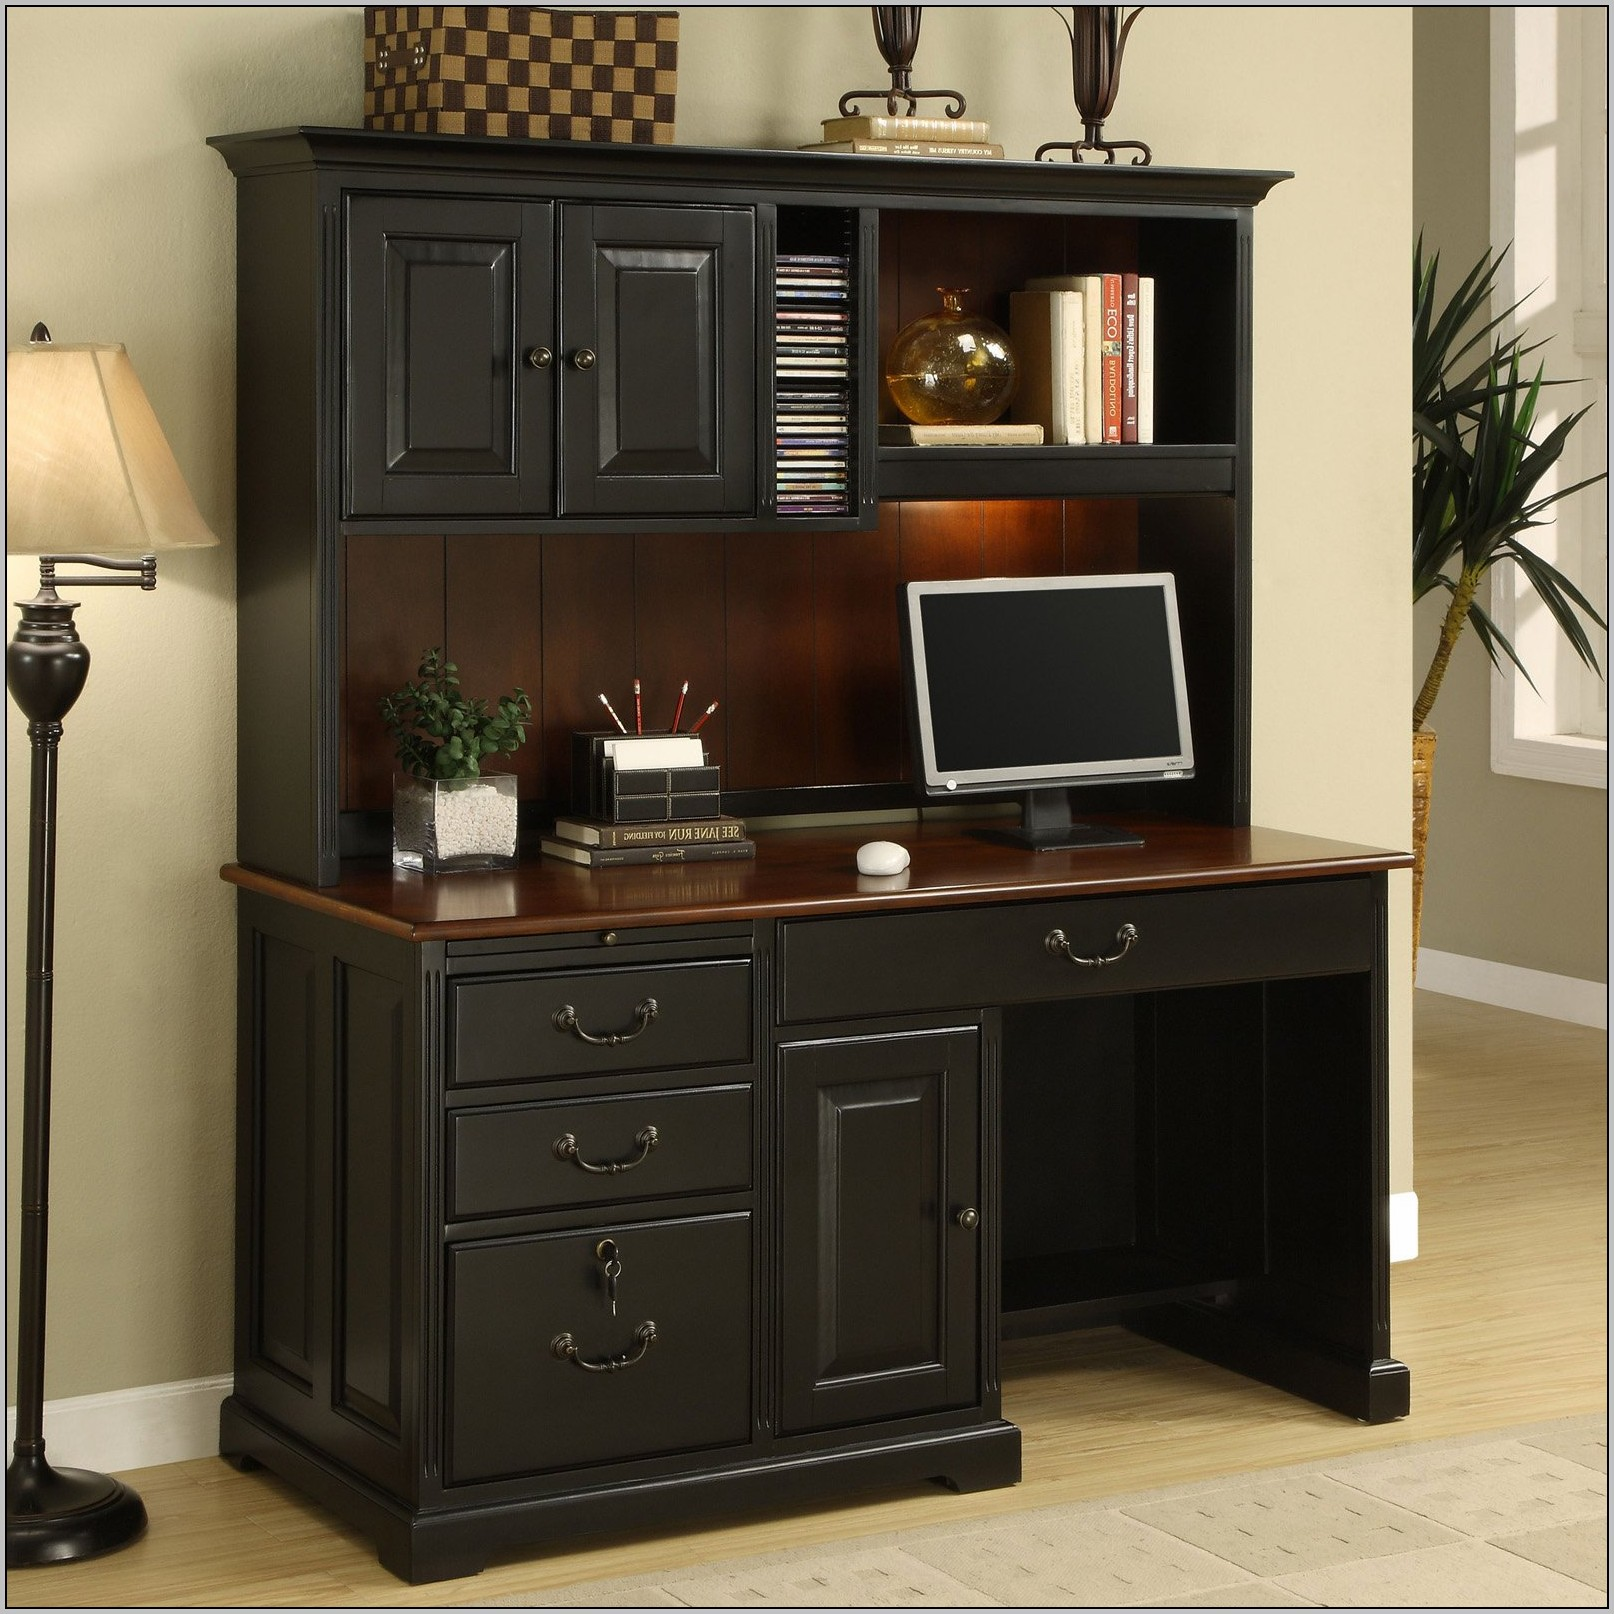 staples computer desks canada download page home design ideas galleries home design ideas guide. Black Bedroom Furniture Sets. Home Design Ideas